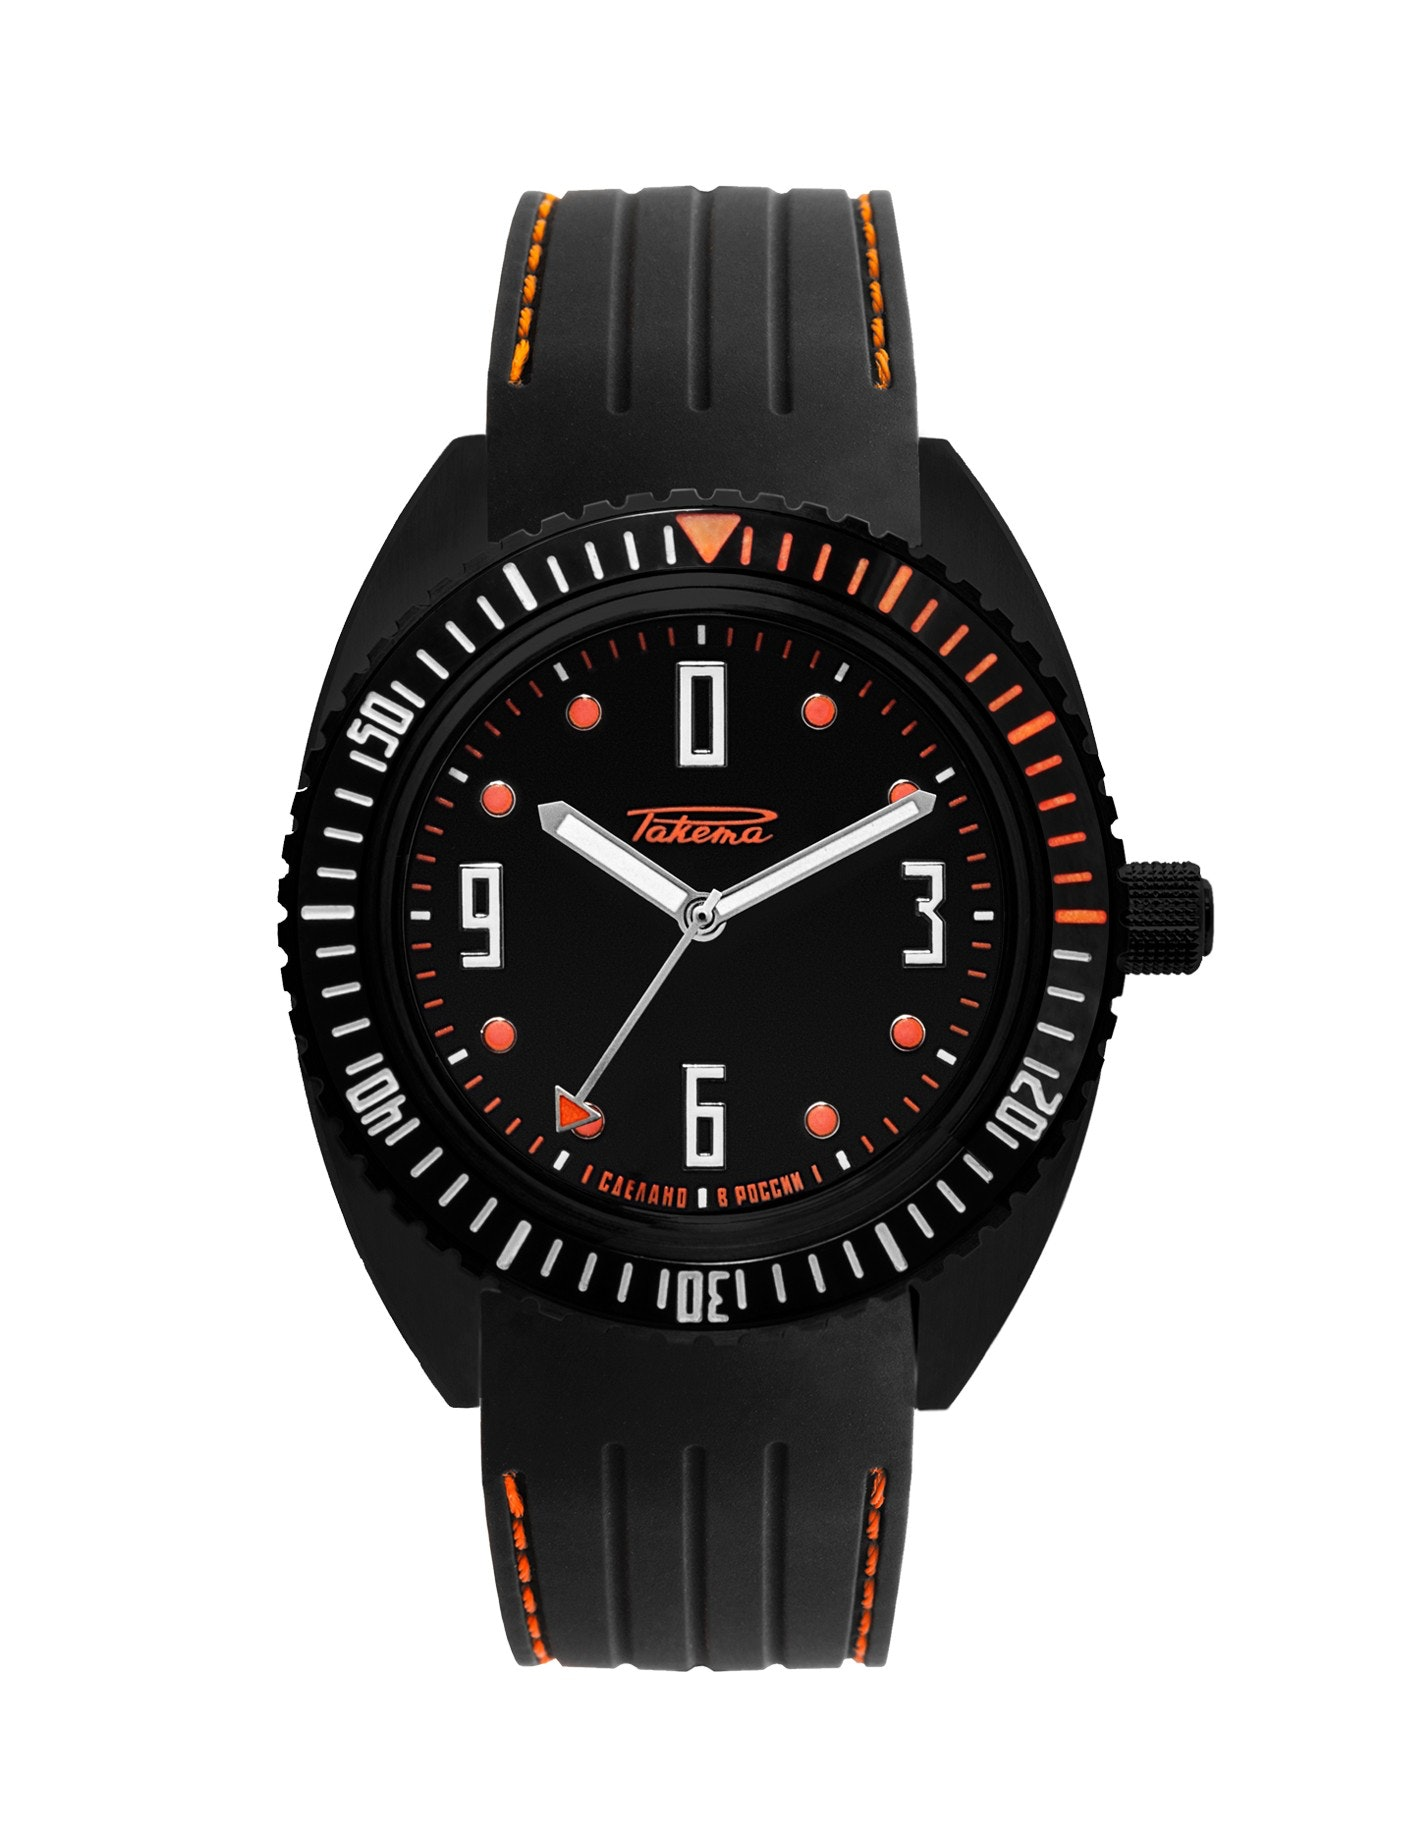 Amphibia N133 - extreme ice-diving